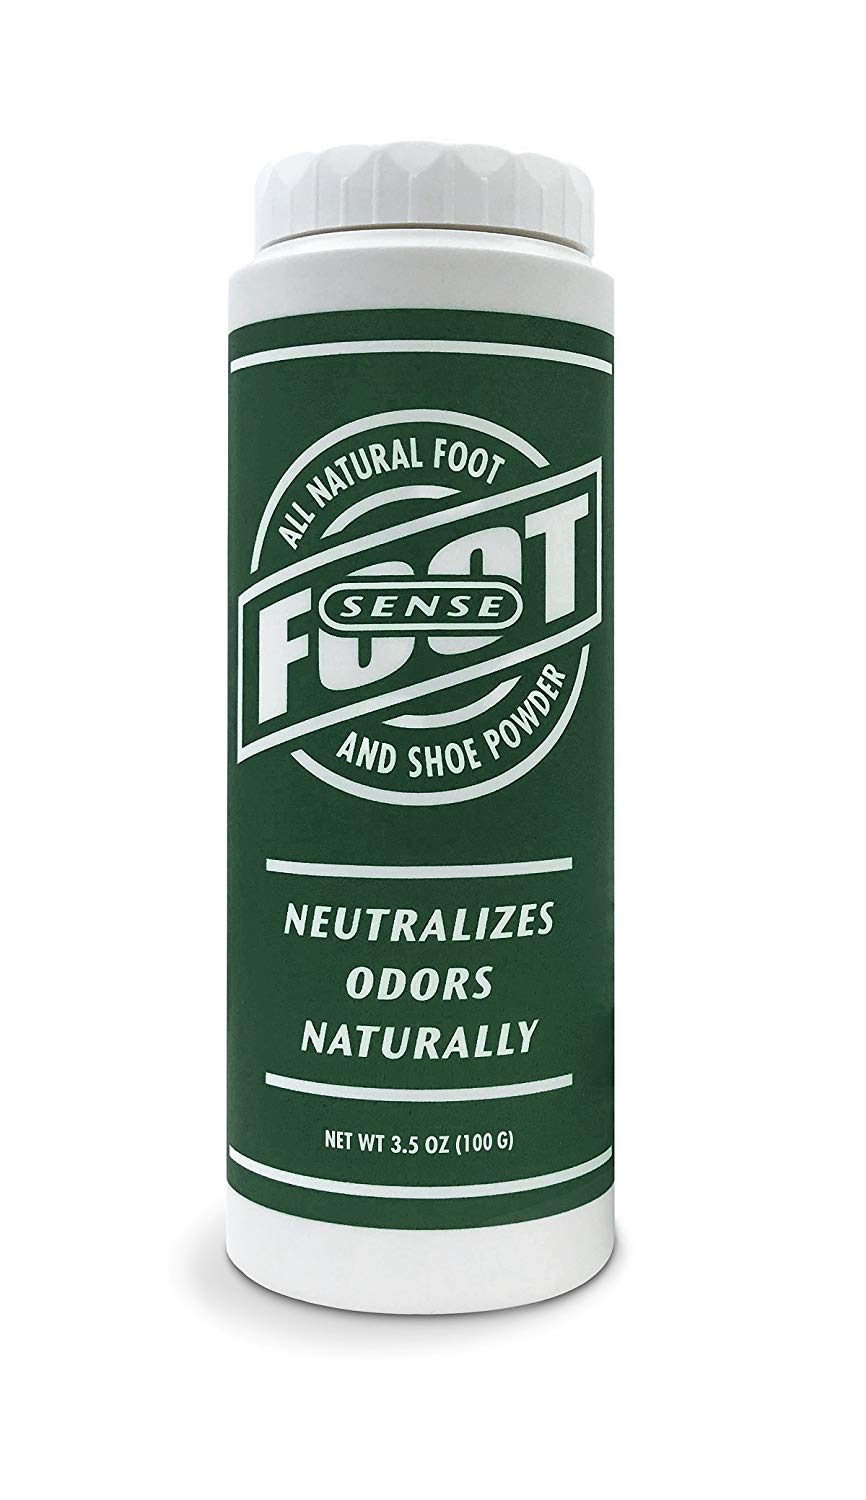 Foot & Shoe Powder - Powerful Odor Eliminator for Smelly Shoes and Stinky Feet